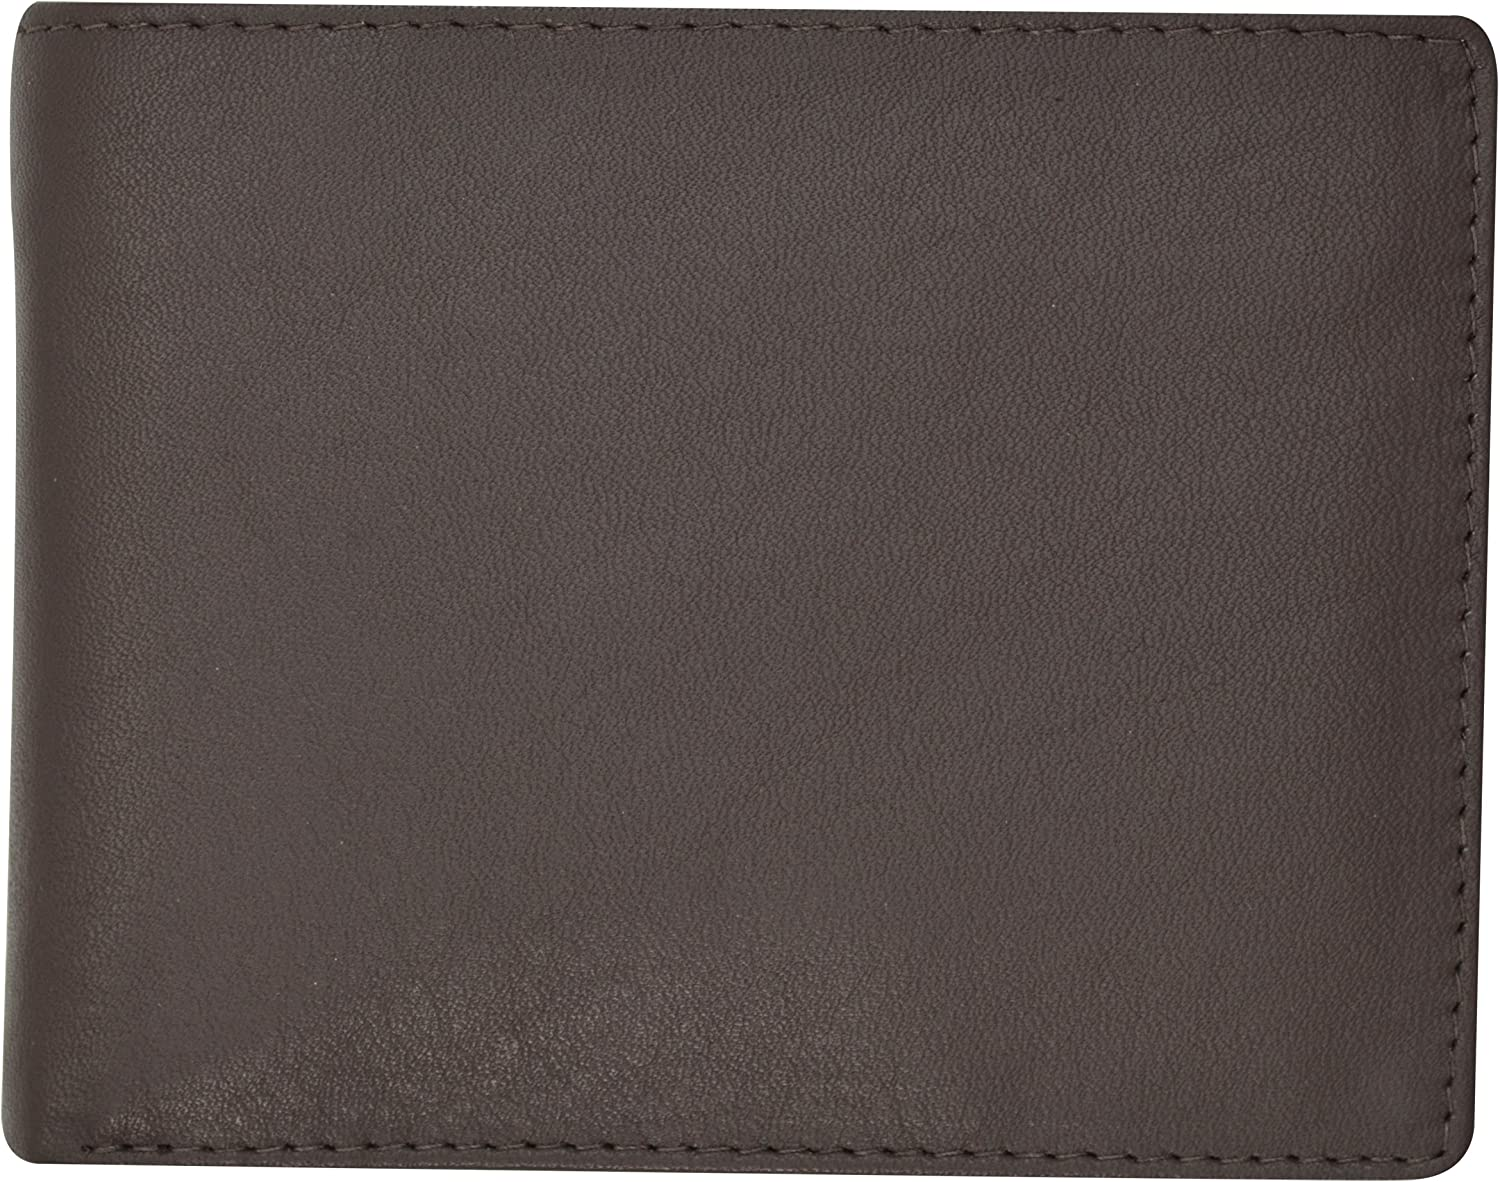 Moga Handmade Genuine Leather Mens Bifold Wallet with Coin Pouch